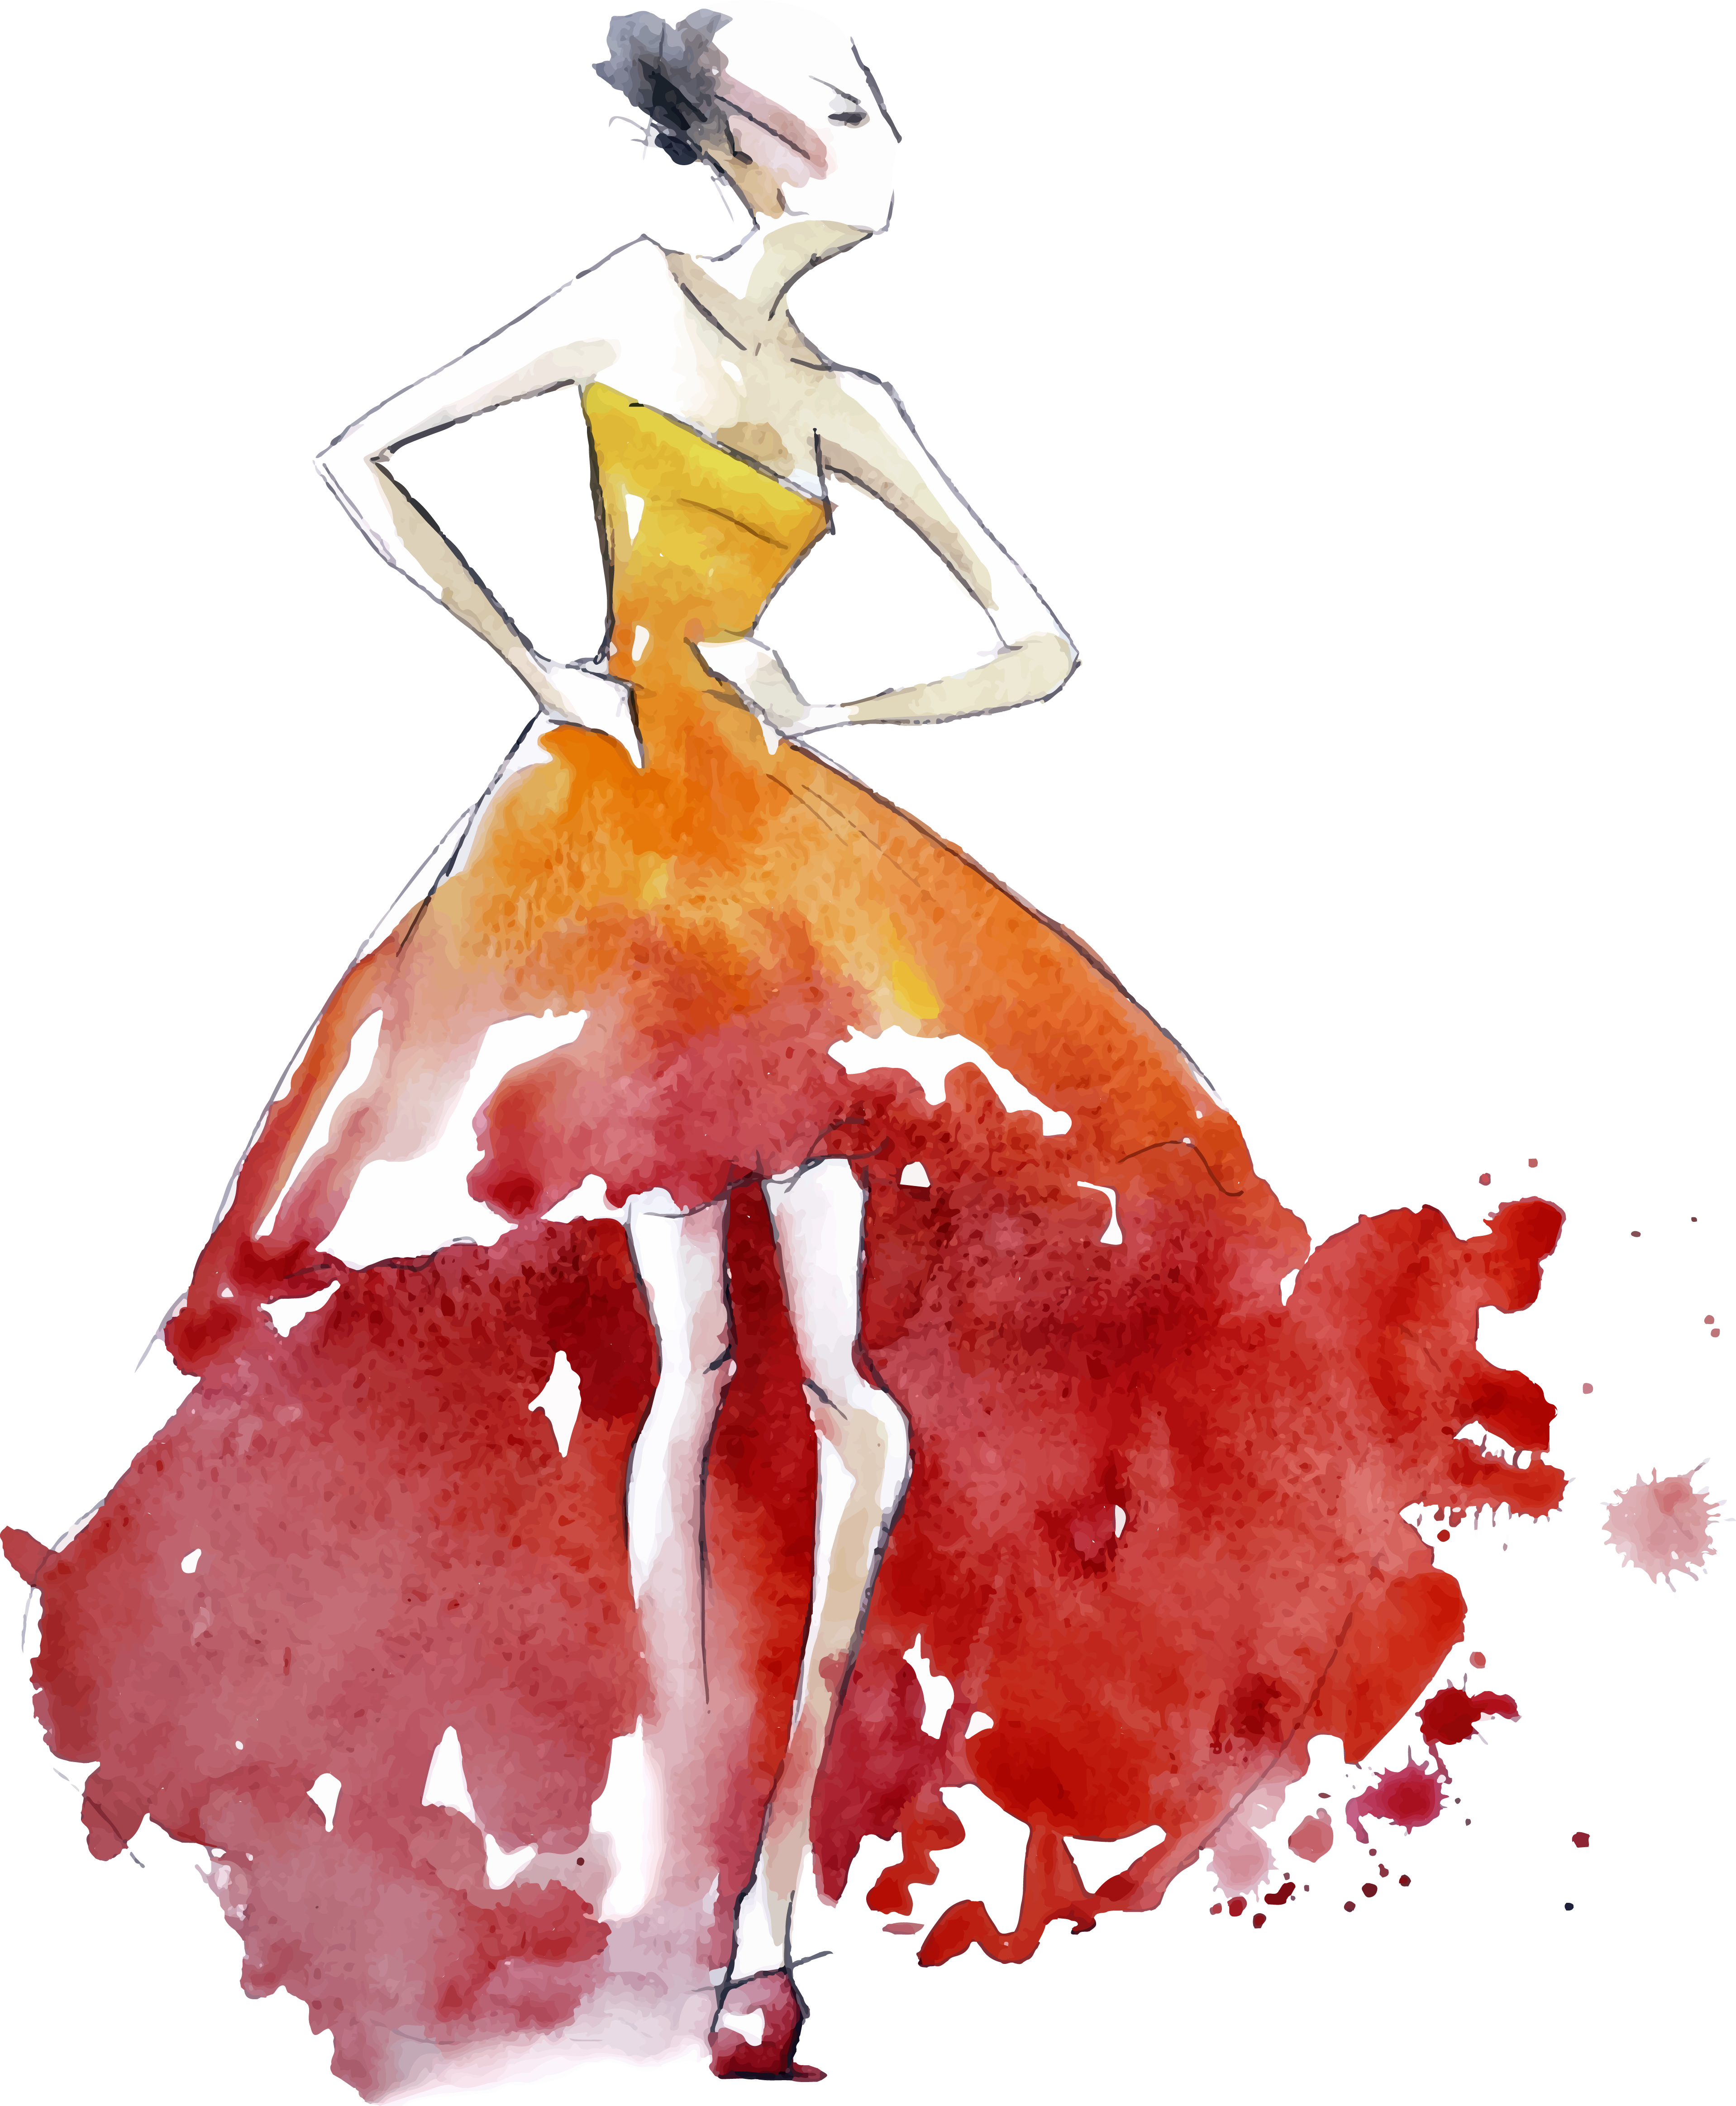 clipart freeuse library Cheesecake drawing watercolor. Fashion design illustration painted